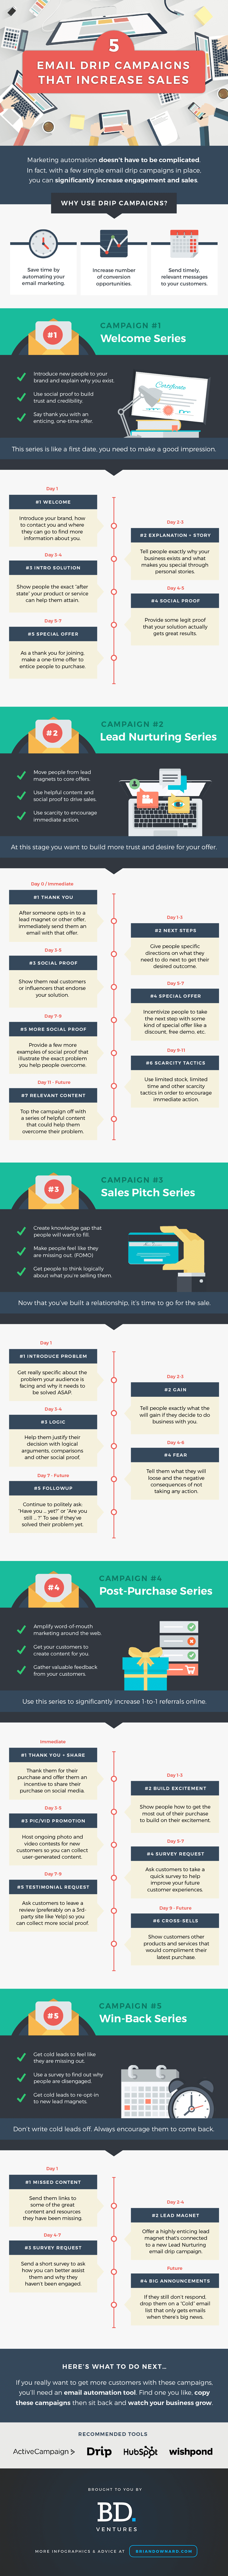 Increase Sales with Email Campaigns Infographic